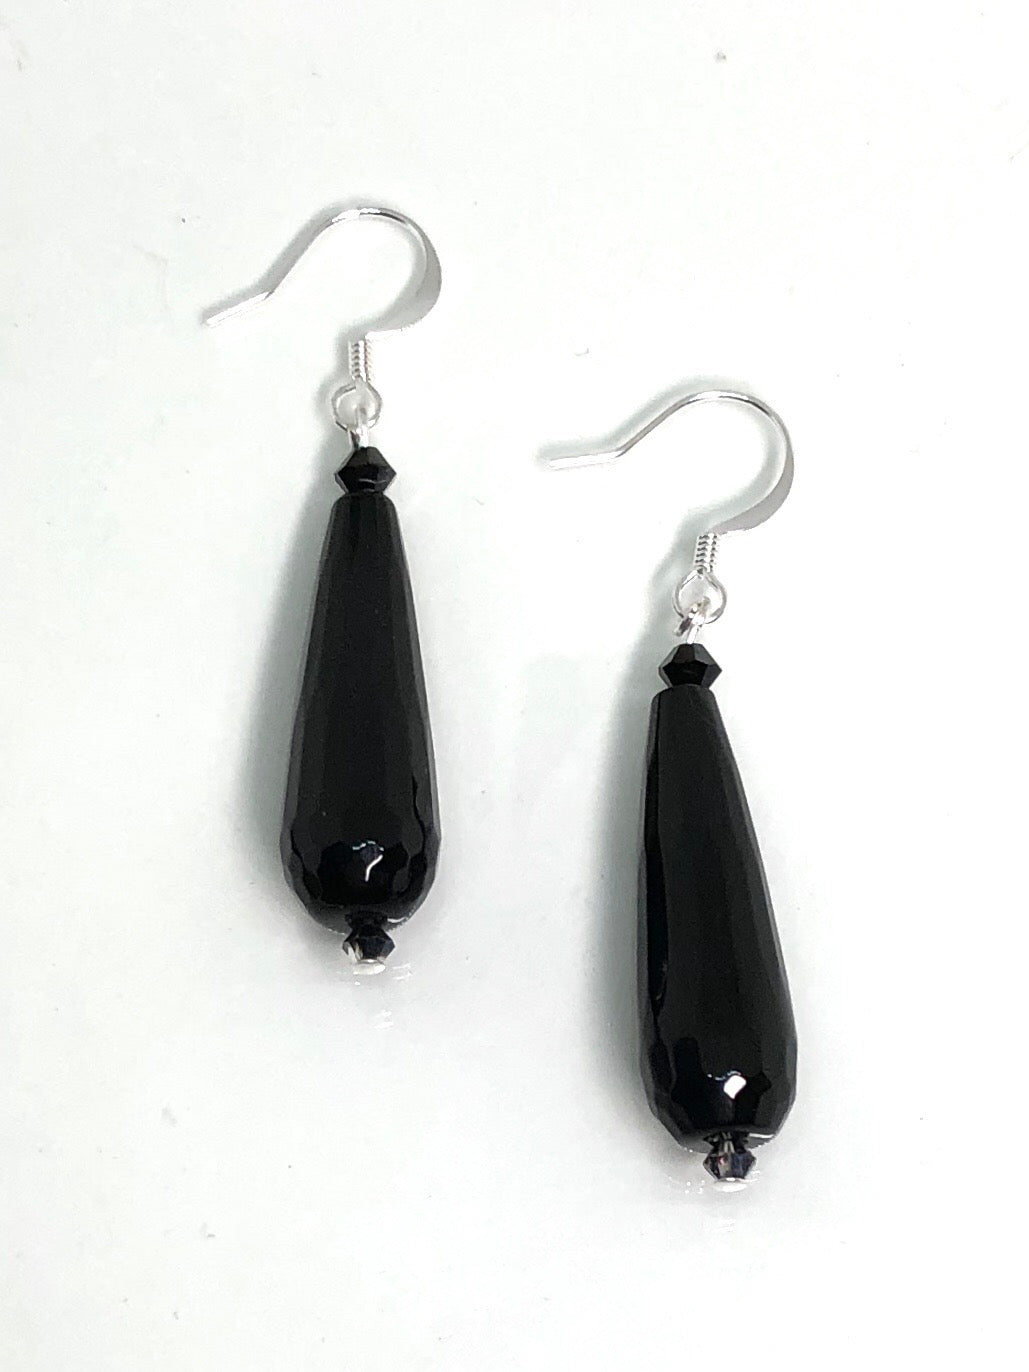 teardrop style statement earrings are made from natural stone